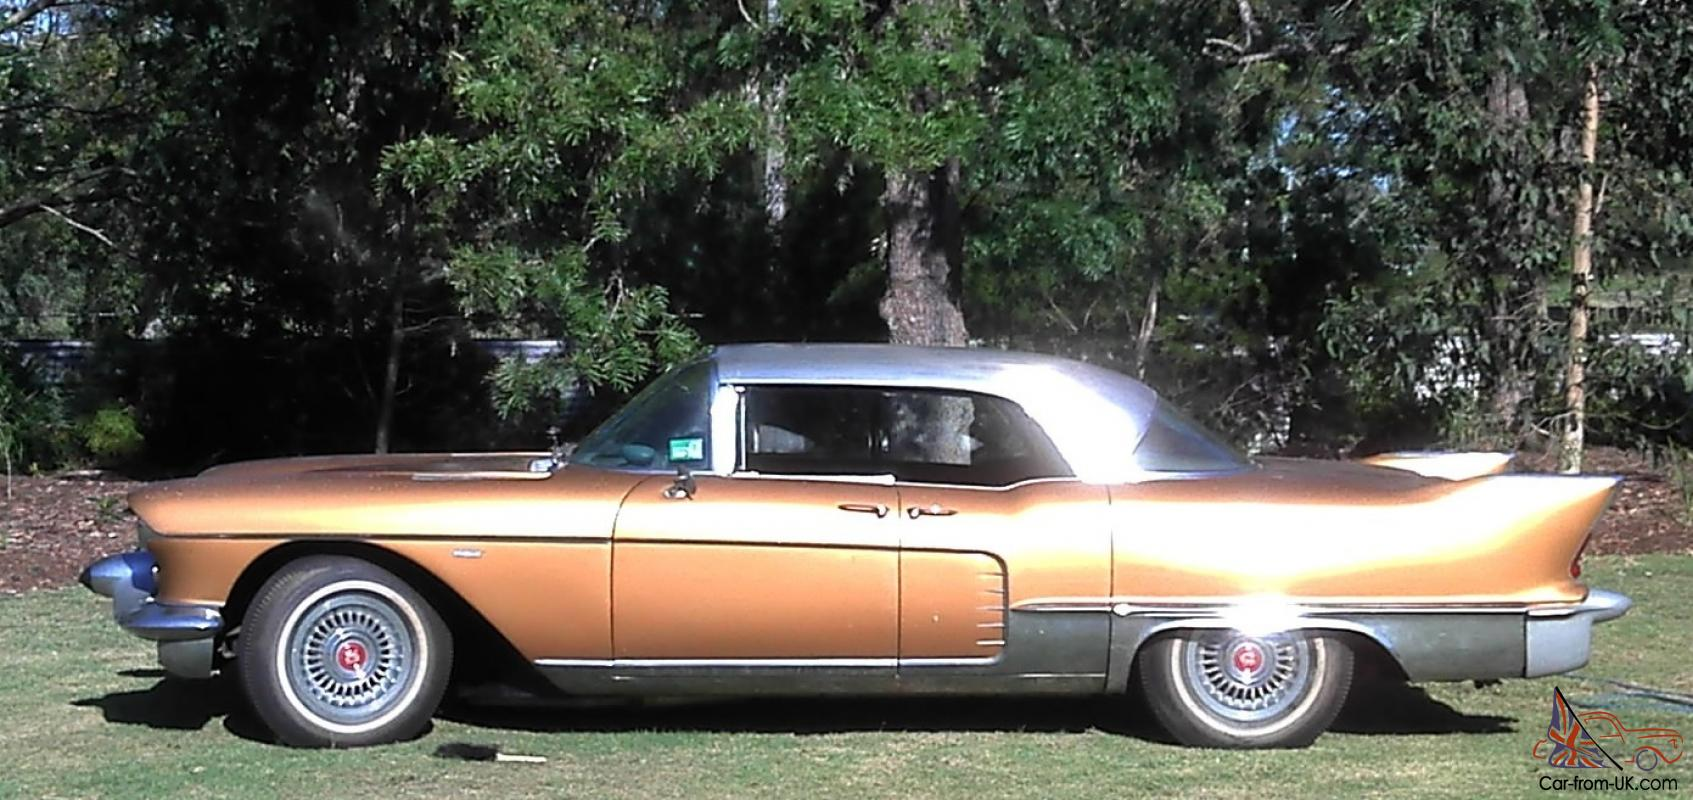 Cadillac Eldorado Brougham 1957 Stainless Roof Suicide Doors 1951 Convertible For Sale